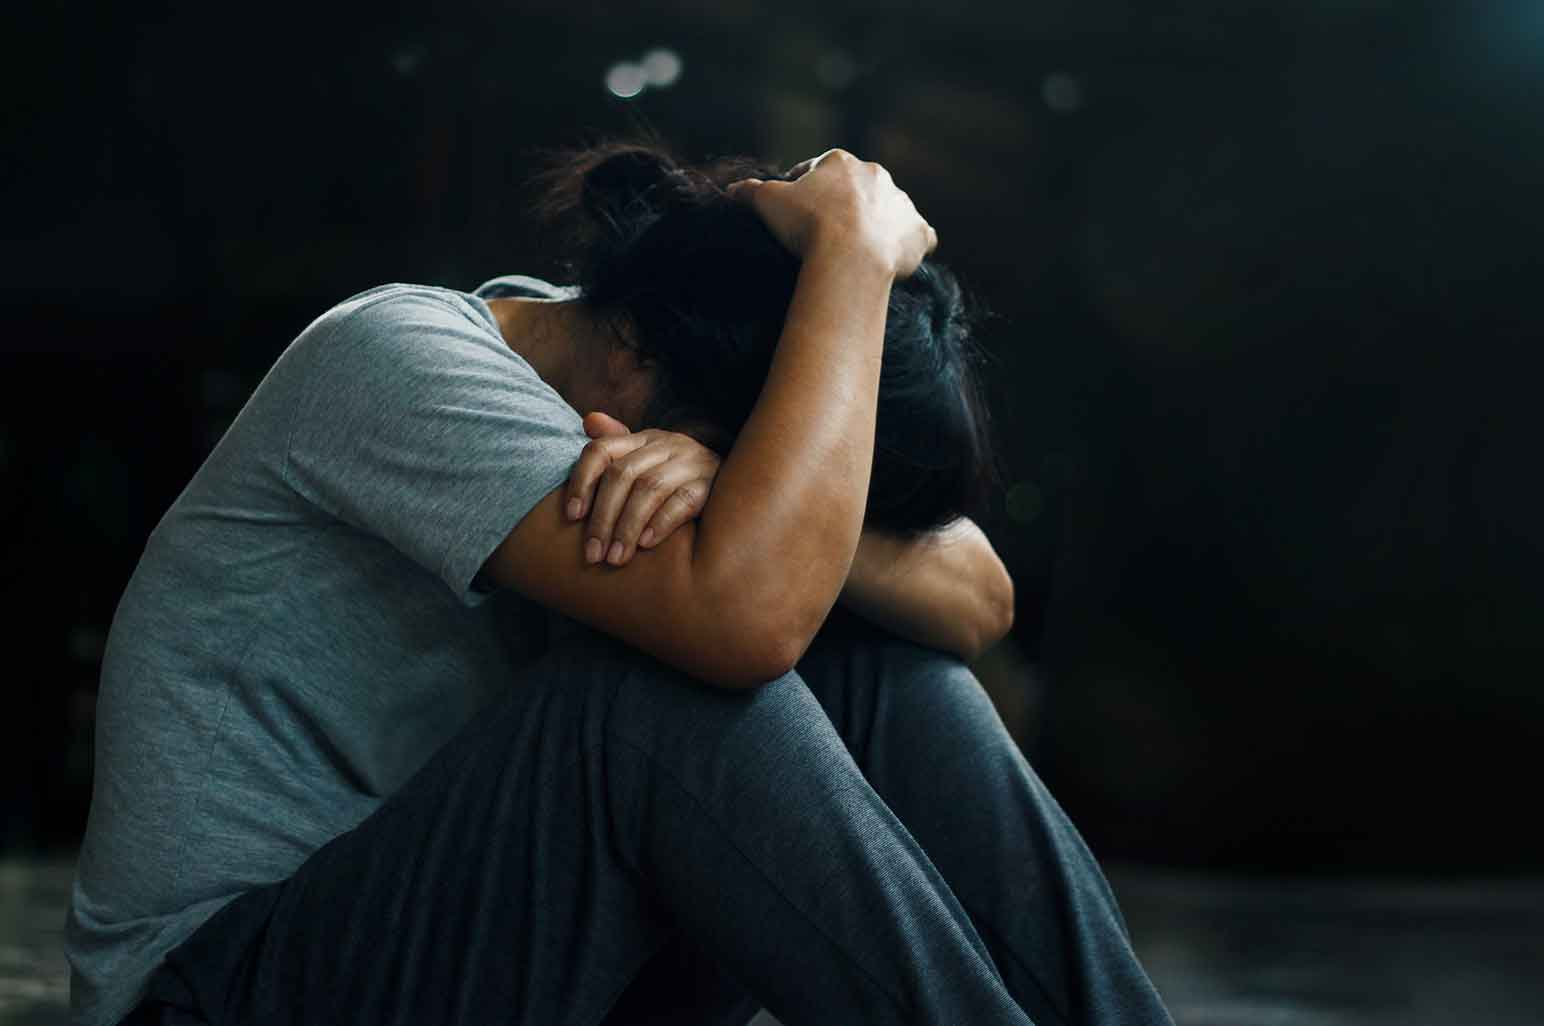 What PTSD Is All About and How You Can Help People Suffering From It